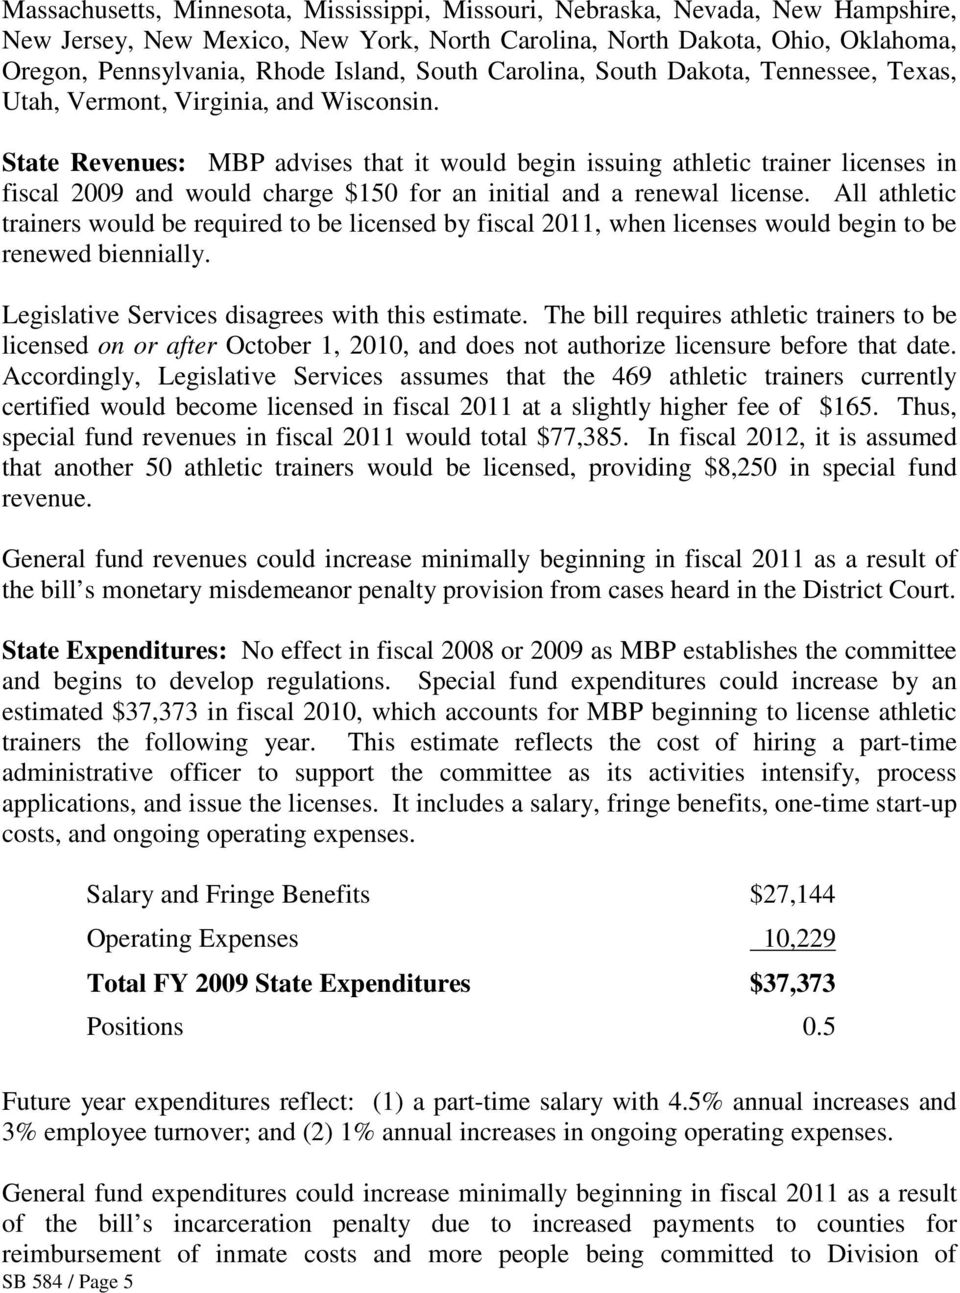 State Revenues: MBP advises that it would begin issuing athletic trainer licenses in fiscal 2009 and would charge $150 for an initial and a renewal license.